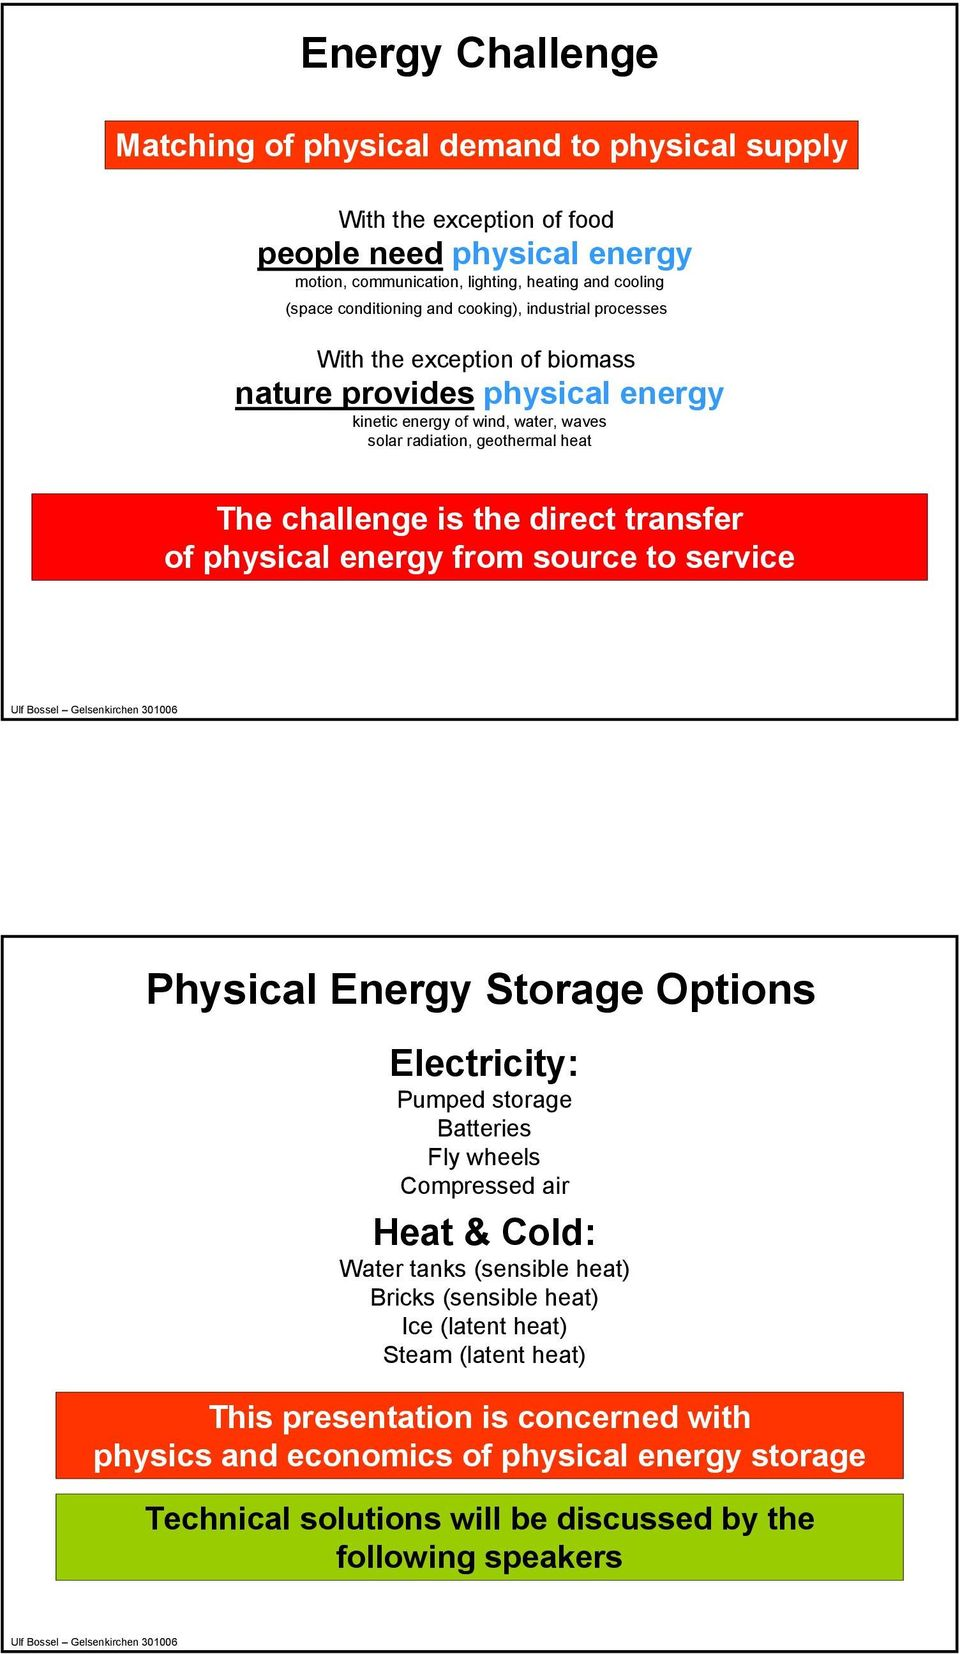 transfer of physical energy from source to service Physical Energy Storage Options Electricity: Pumped storage Batteries Fly wheels Compressed air Heat & Cold: Water tanks (sensible heat) Bricks